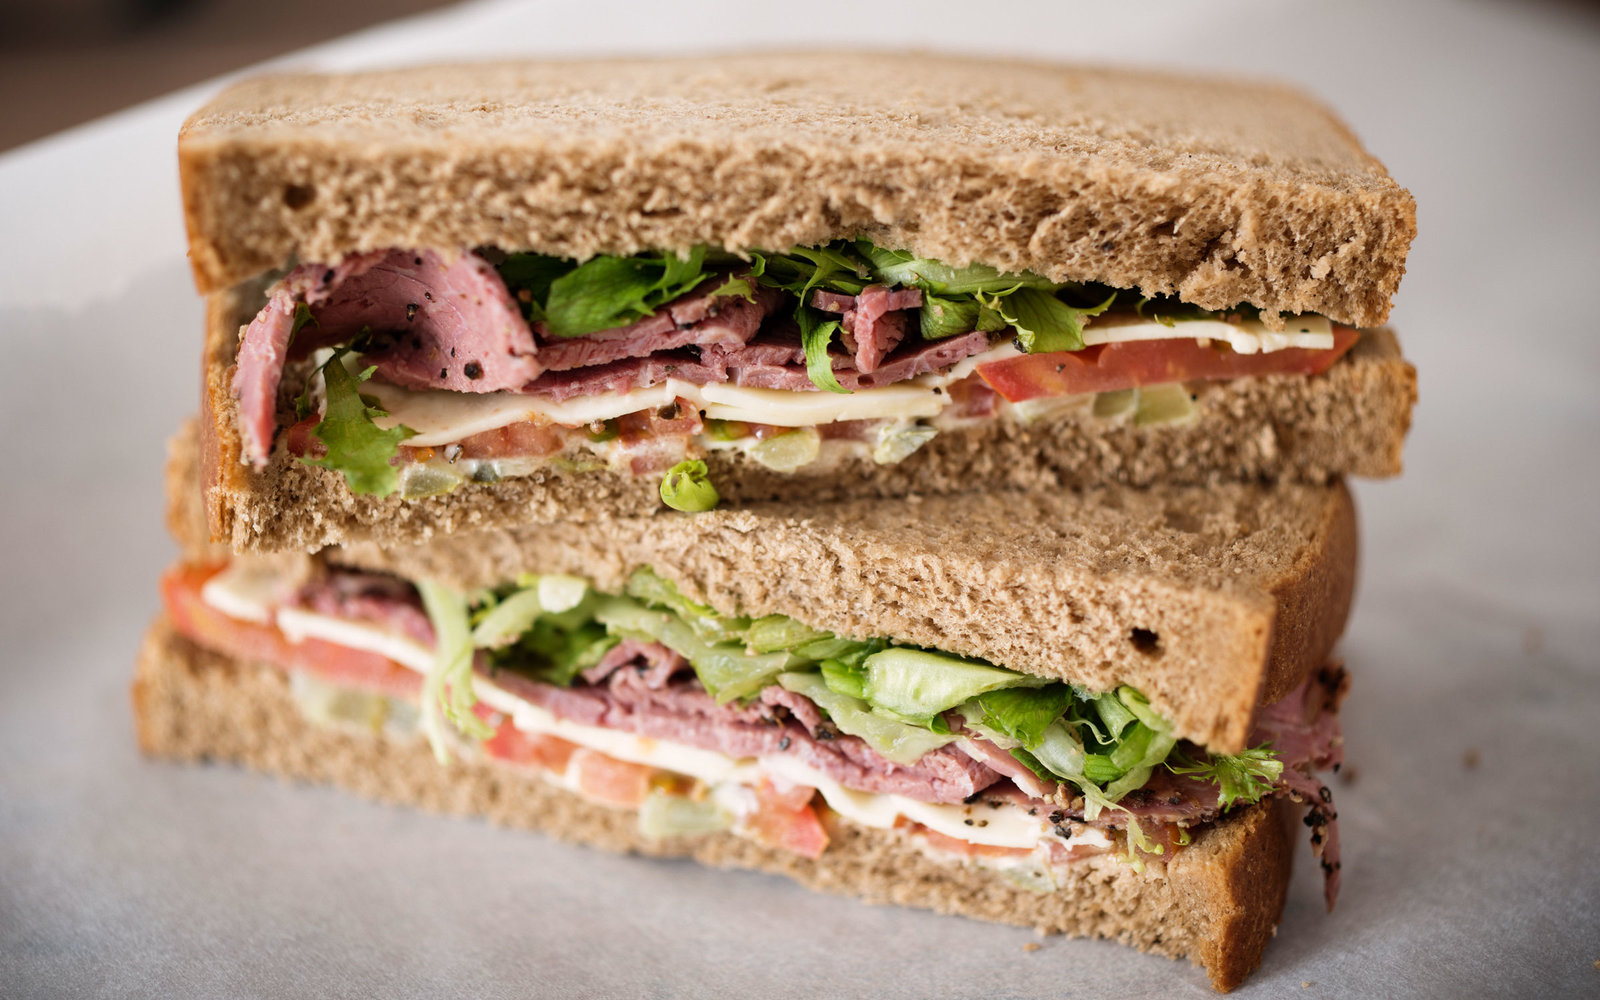 Sandwiches May Be Ruining Your Health